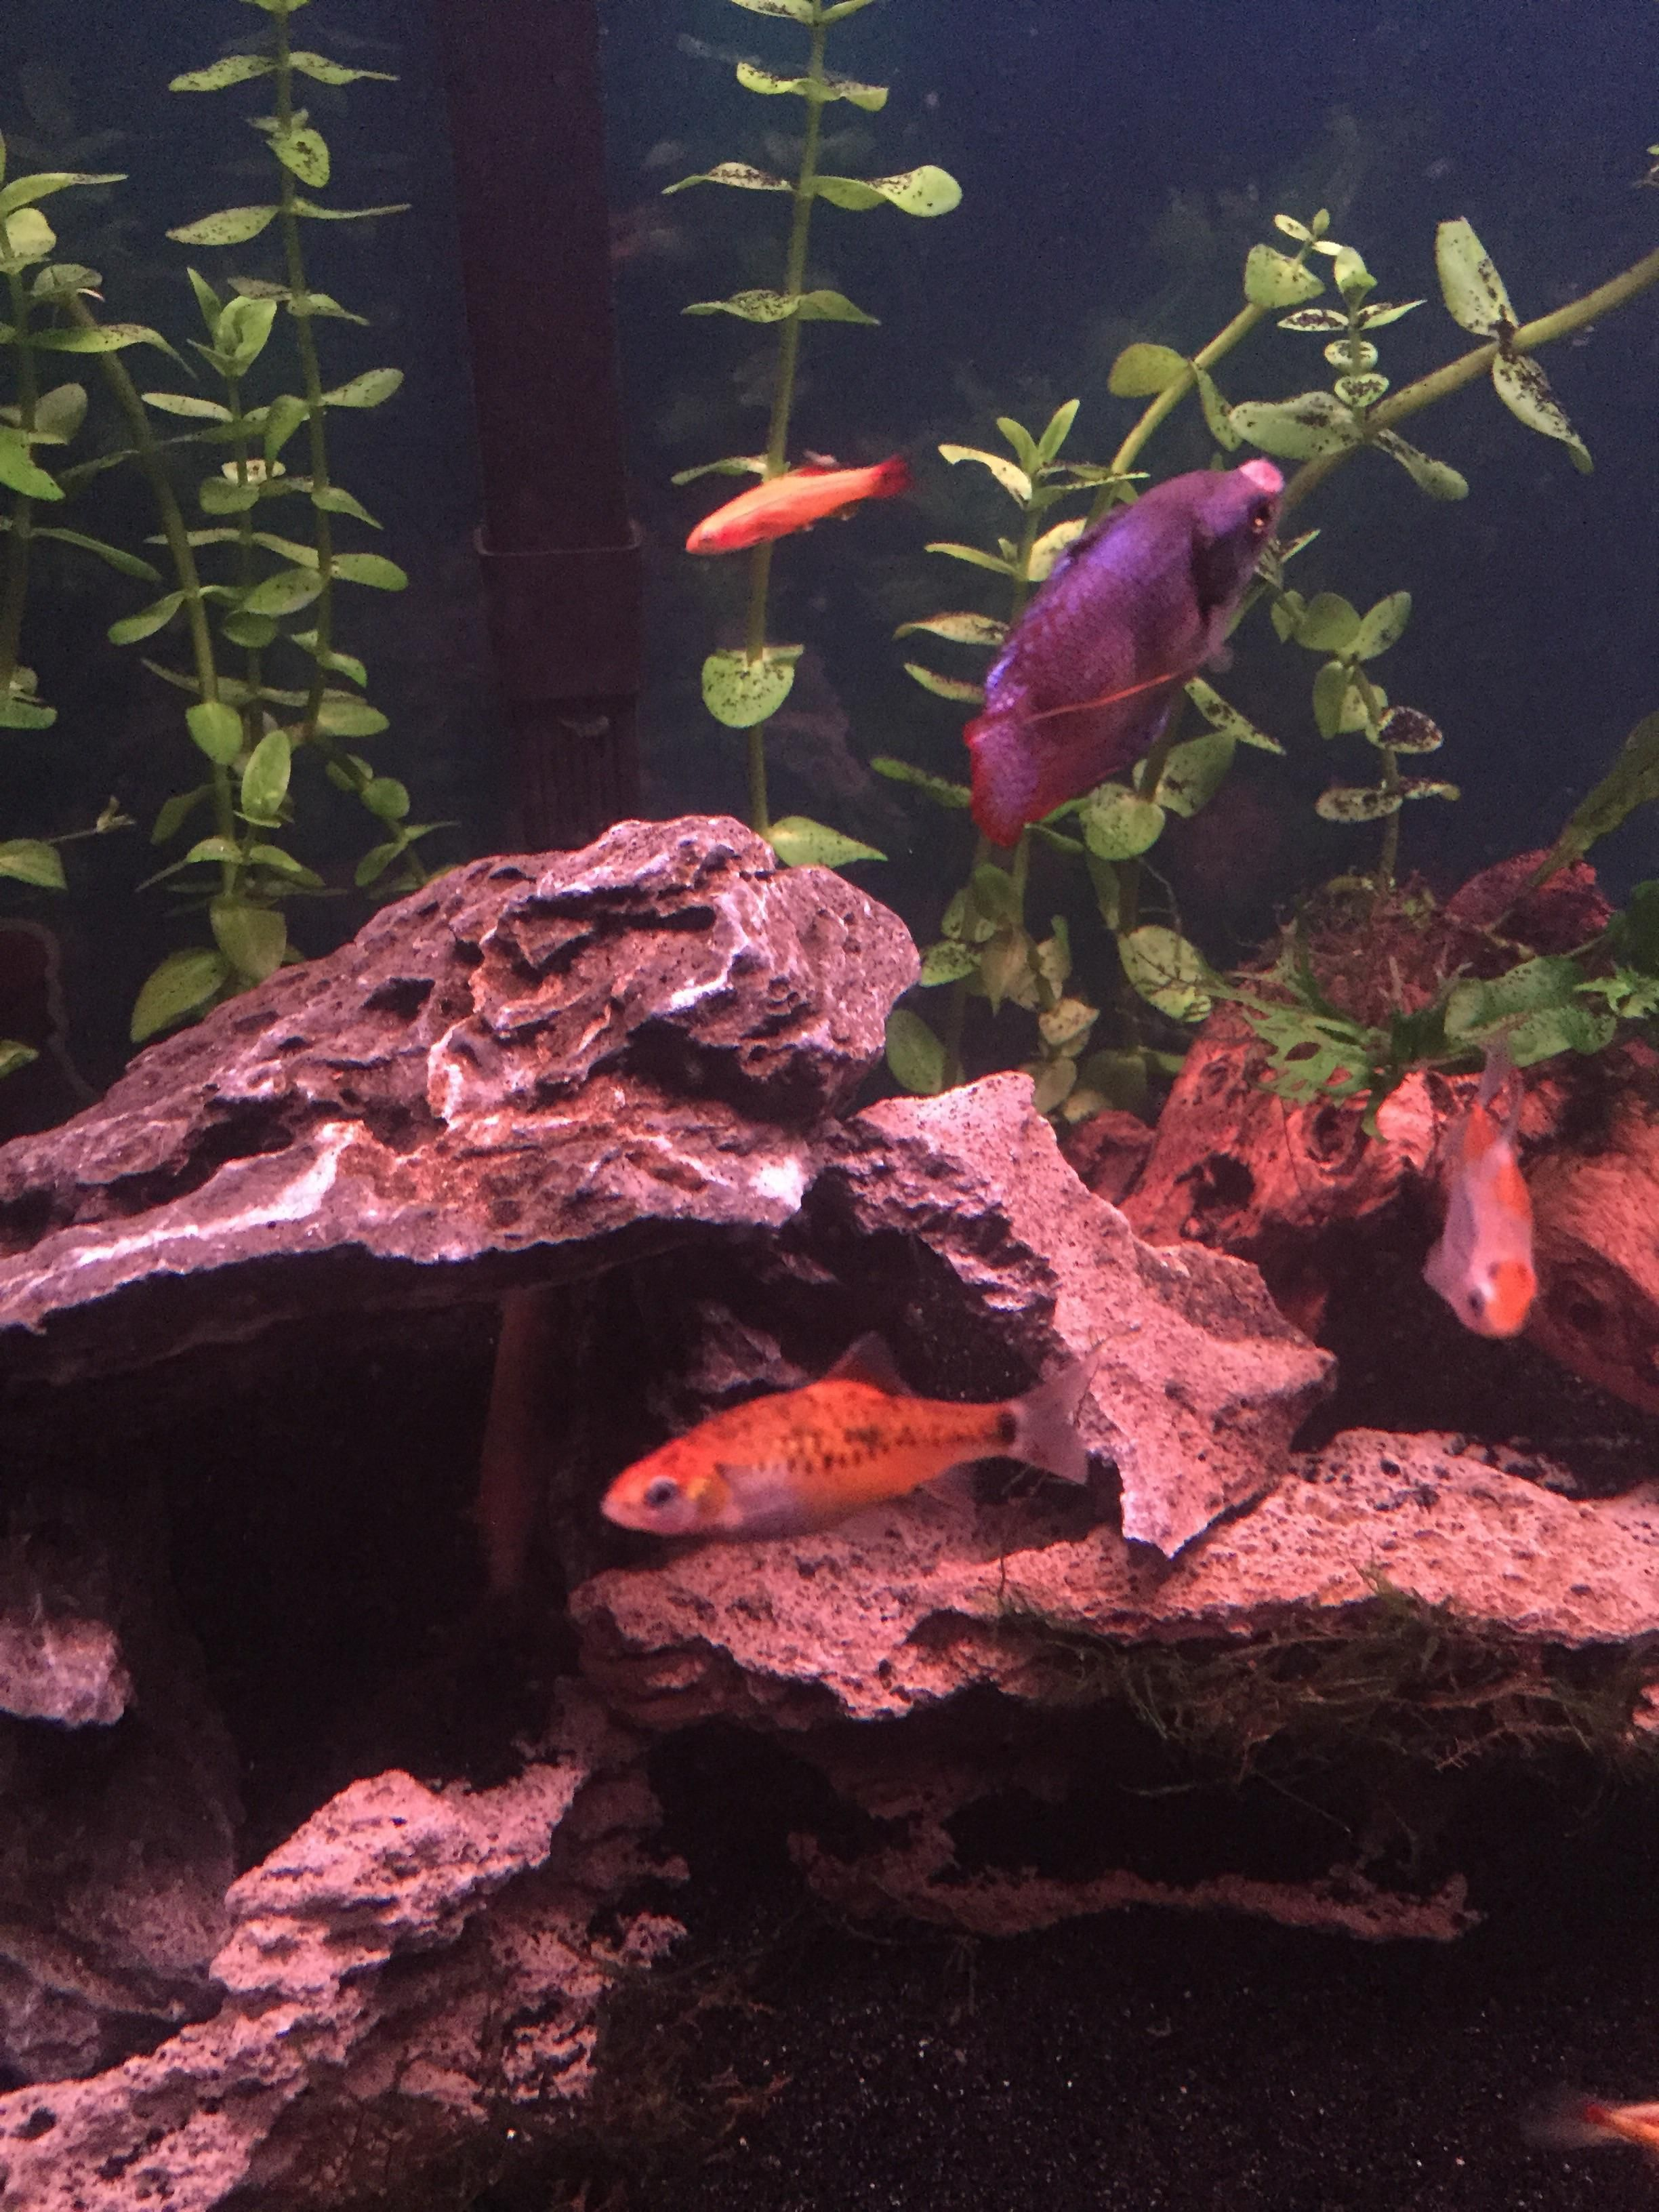 Gourami has a sore on his nose that's not healing and now loaches are sucking on it. Should I make a quarantine tank? Is this contagious?